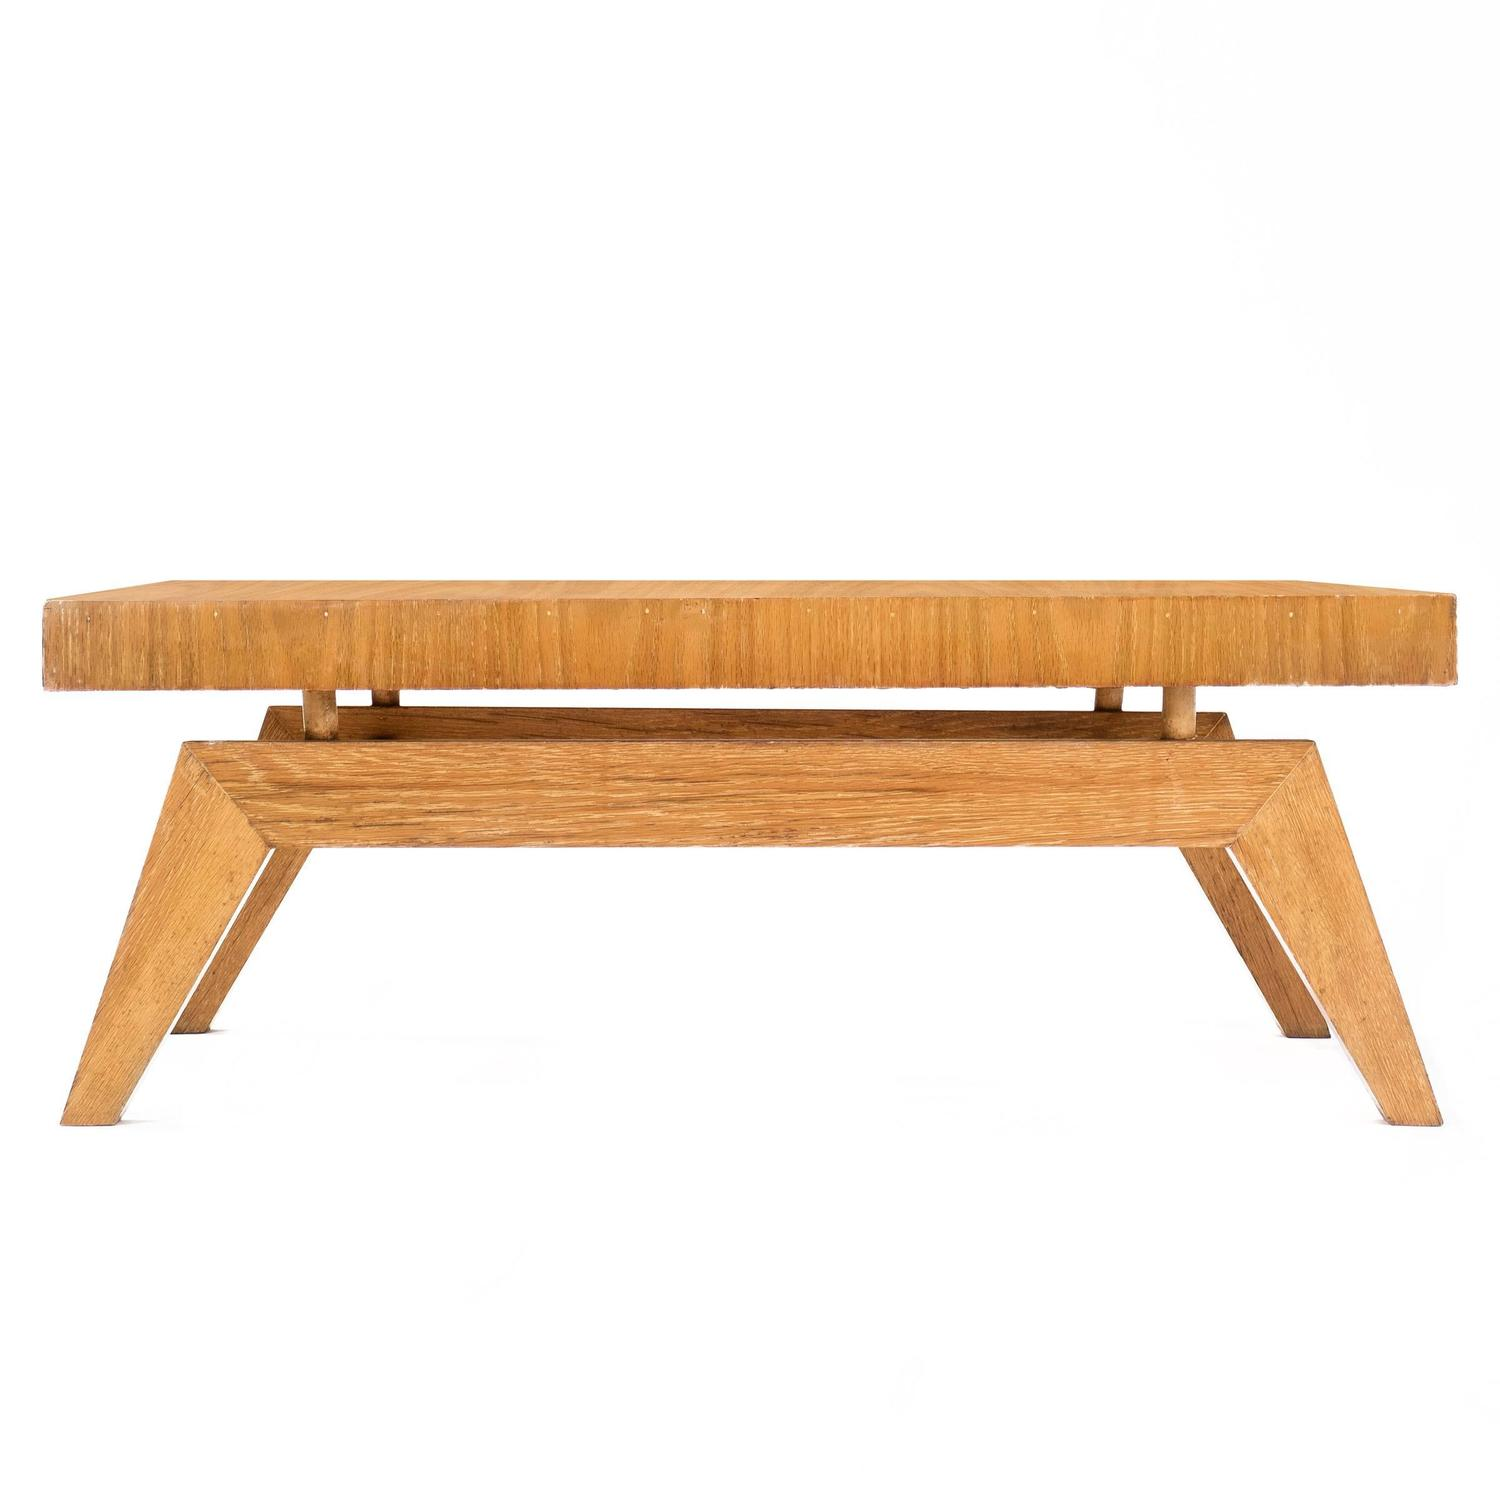 Sam Maloof Coffee Table